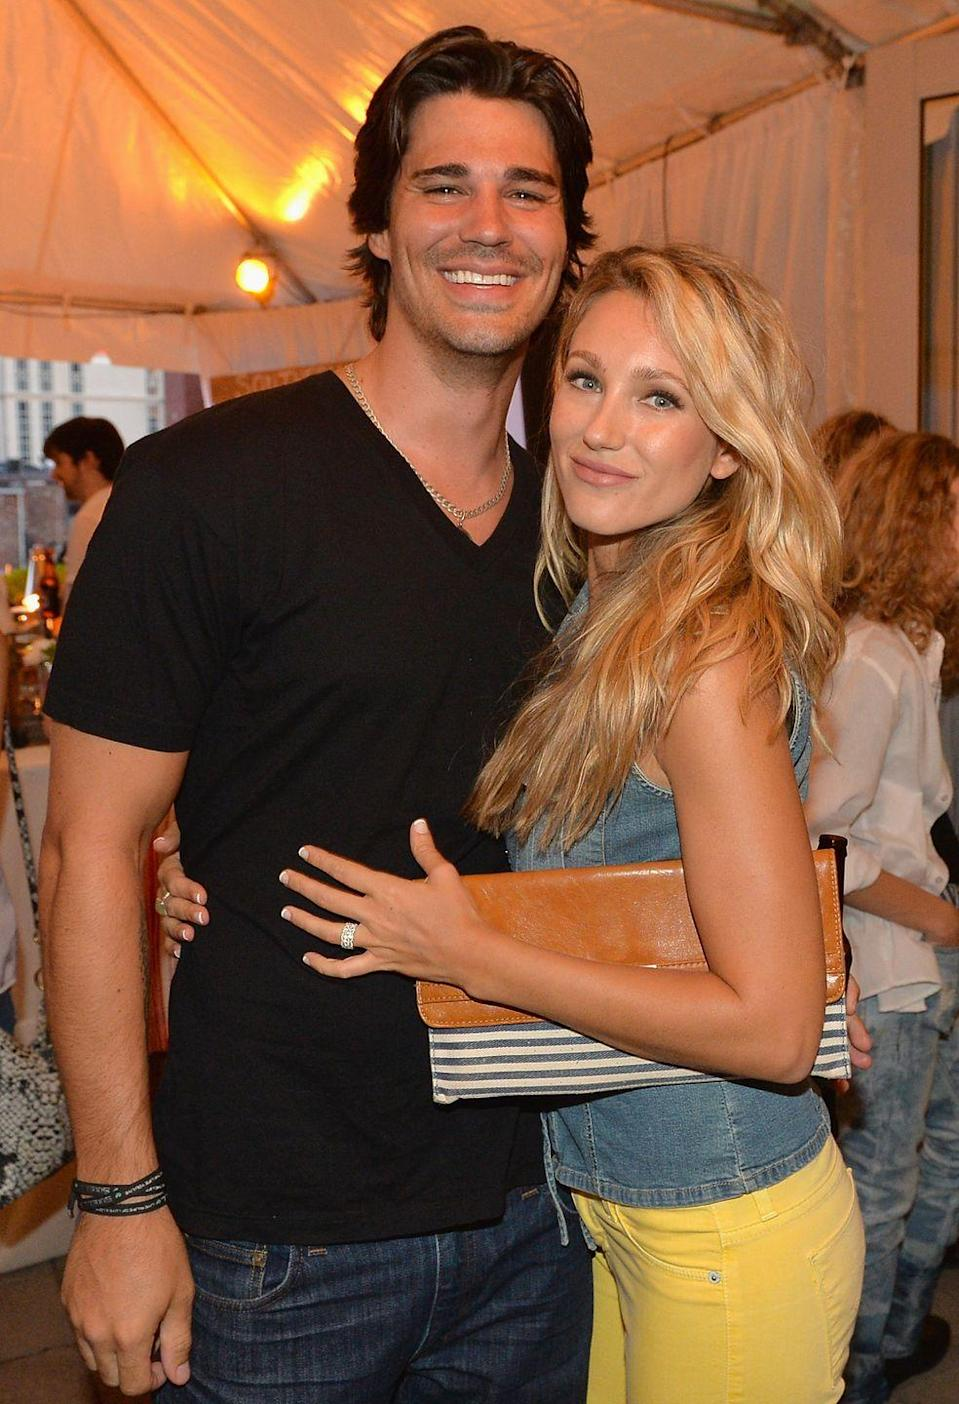 <p>Whitney Duncan and Keith Tollefson met on <em>Survivor: South Pacific</em> in 2011 and continued their romance after returning home. They decided to try reality TV a second time, appearing on <em>The Amazing Race </em>during their engagement. They got married shortly afterwards in 2014. </p>